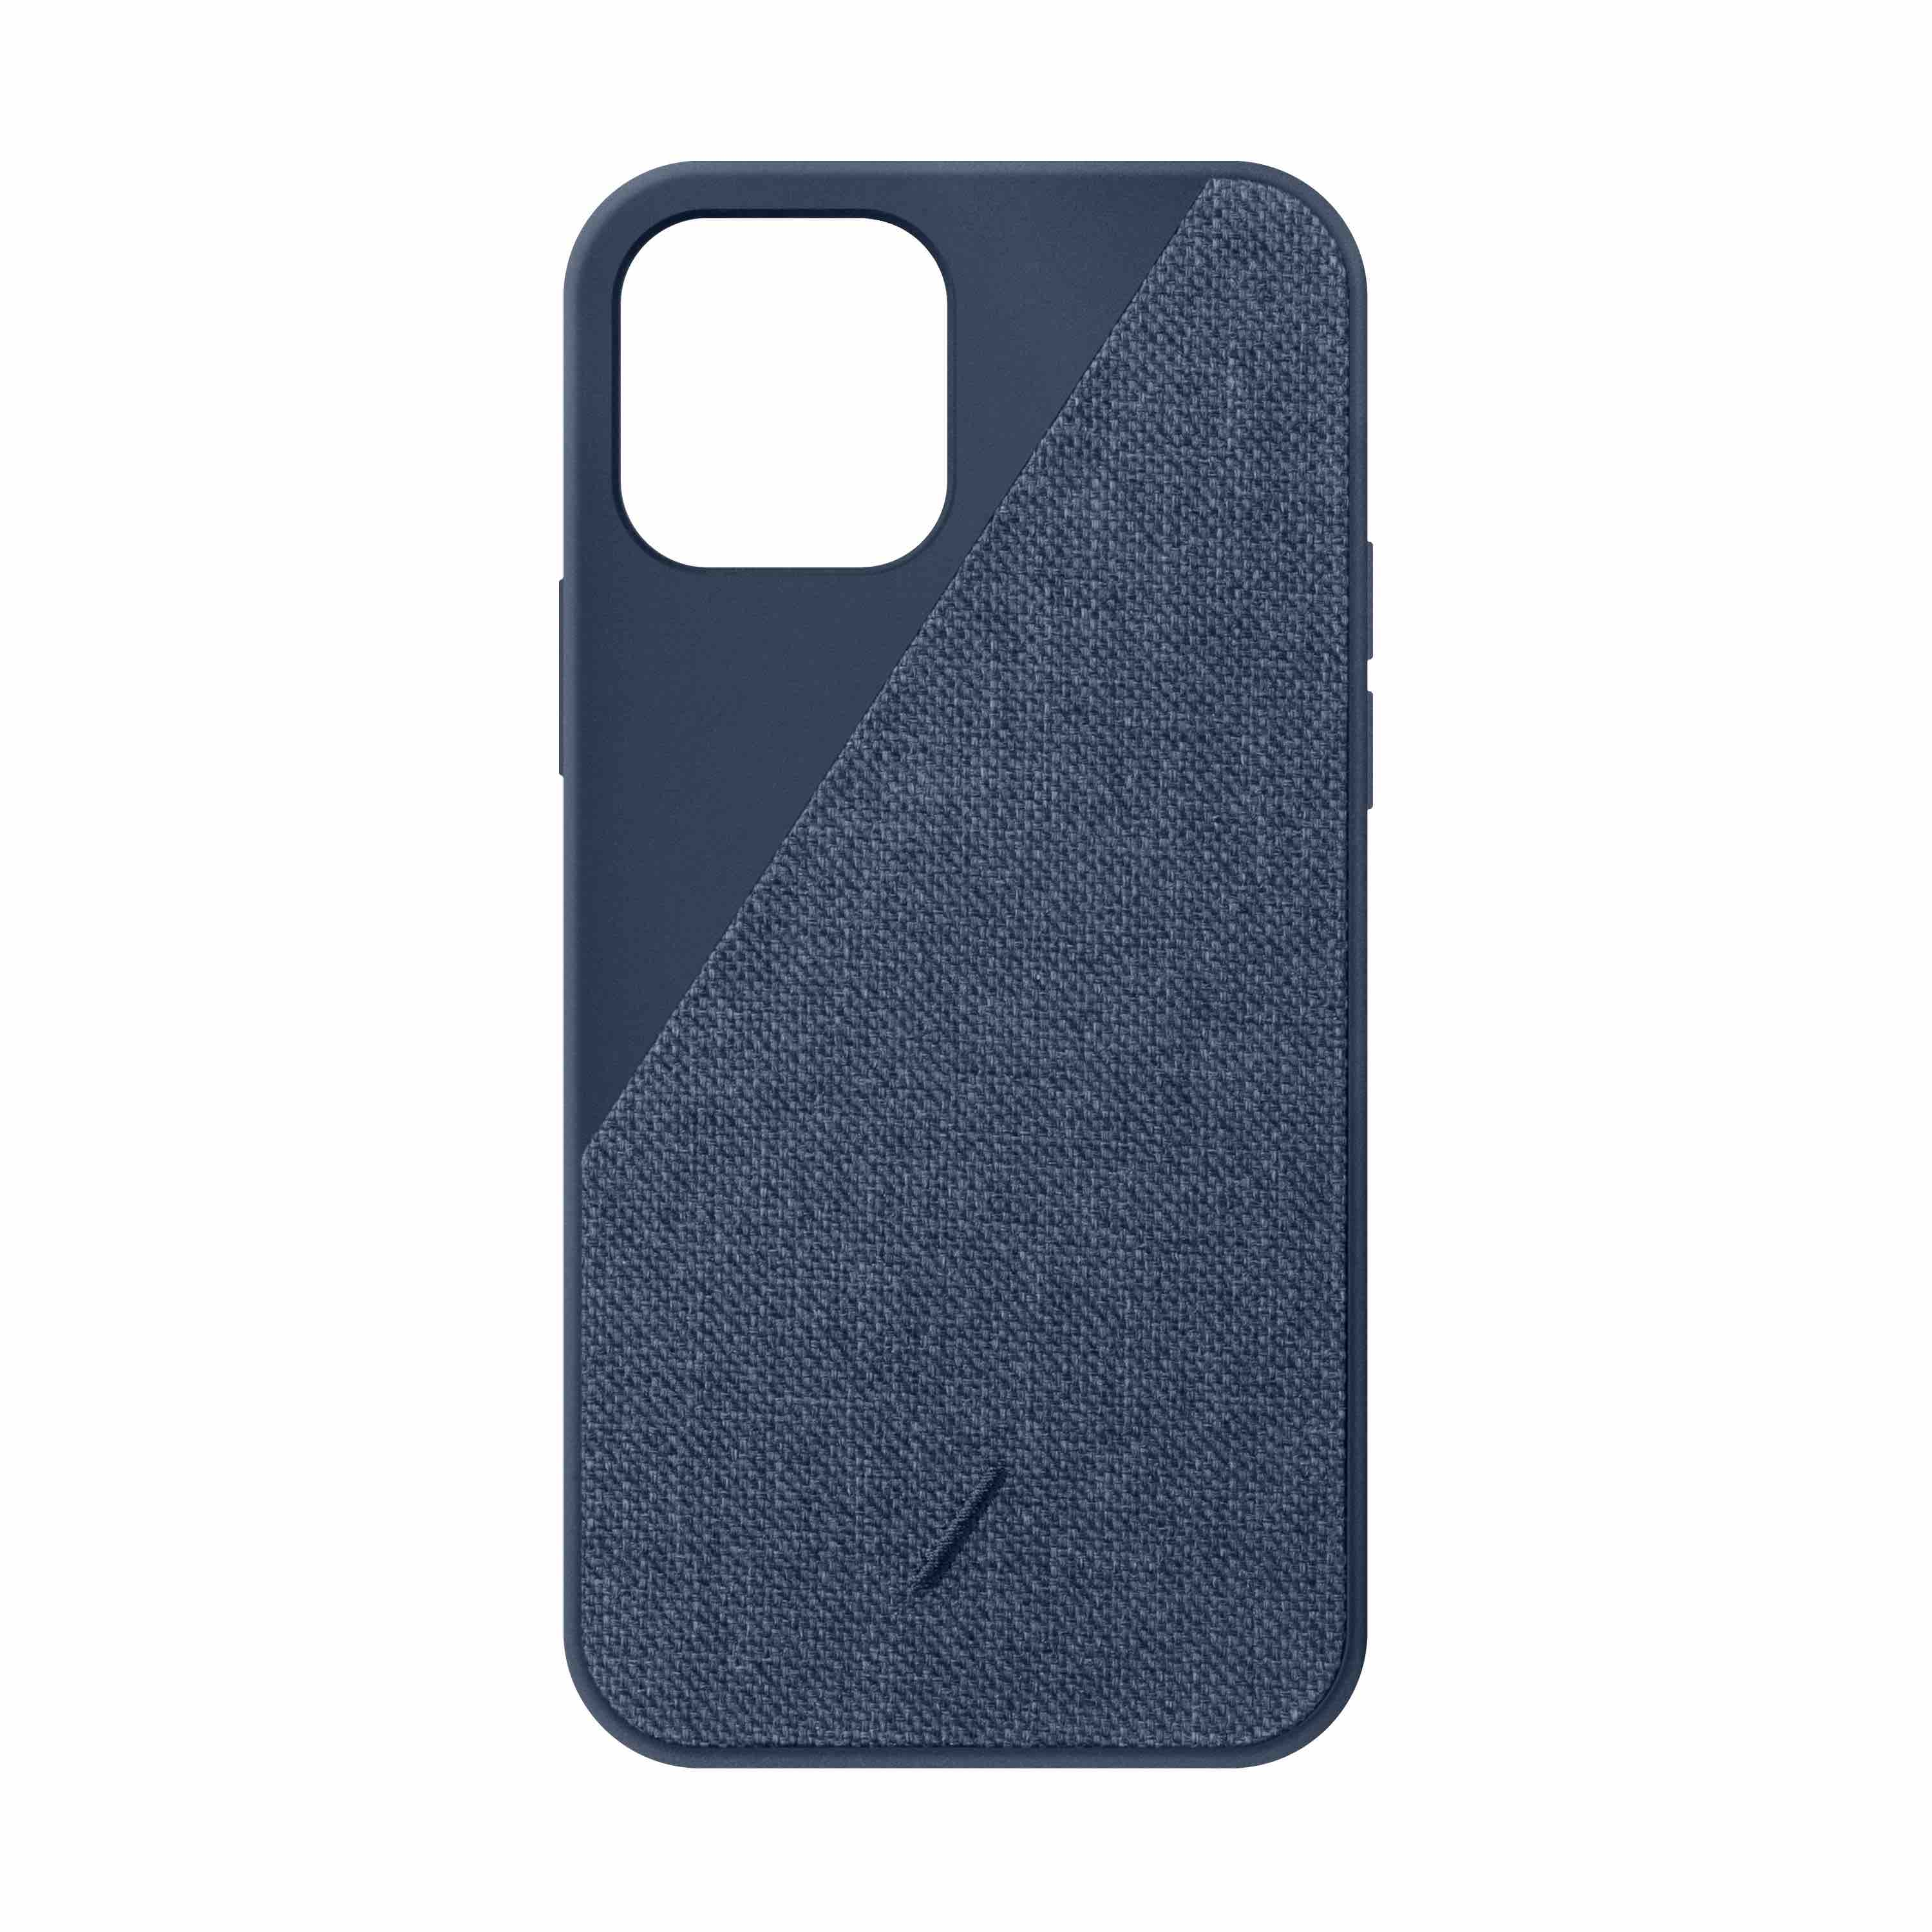 Native Union iPhone 12 / iPhone 12 Pro Clic Canvas Case